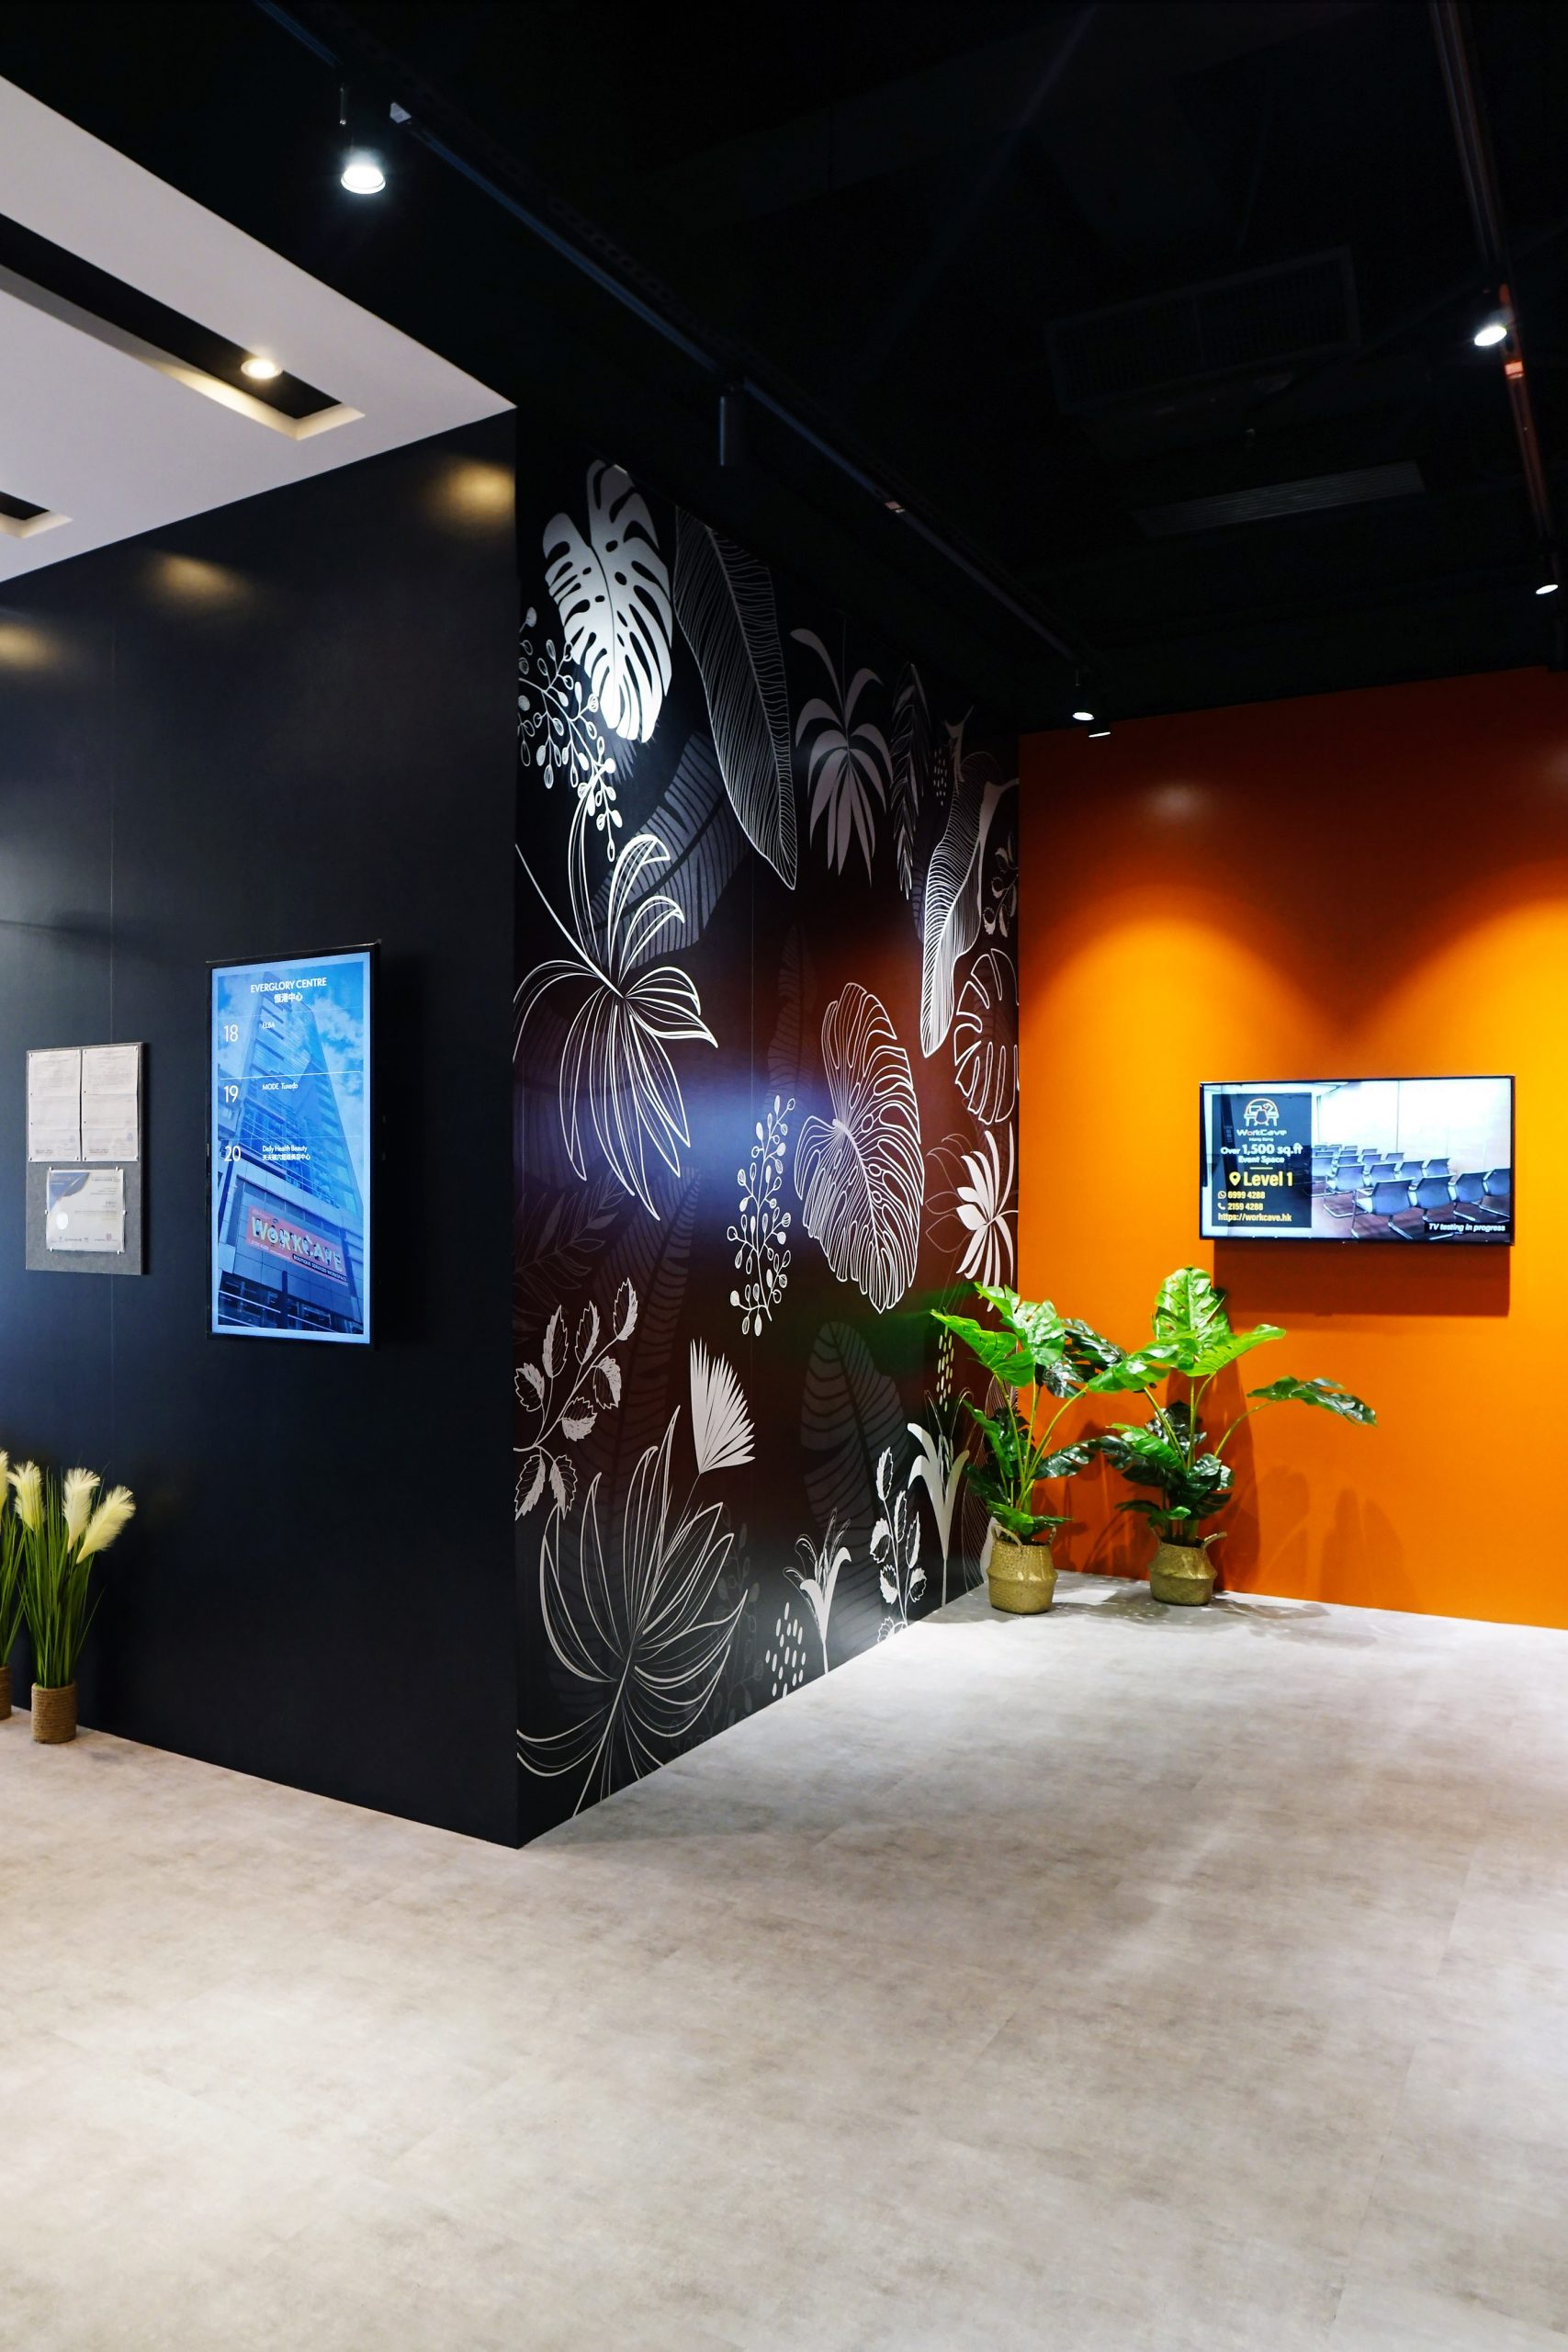 Lobby with orange wall and line art and directory board